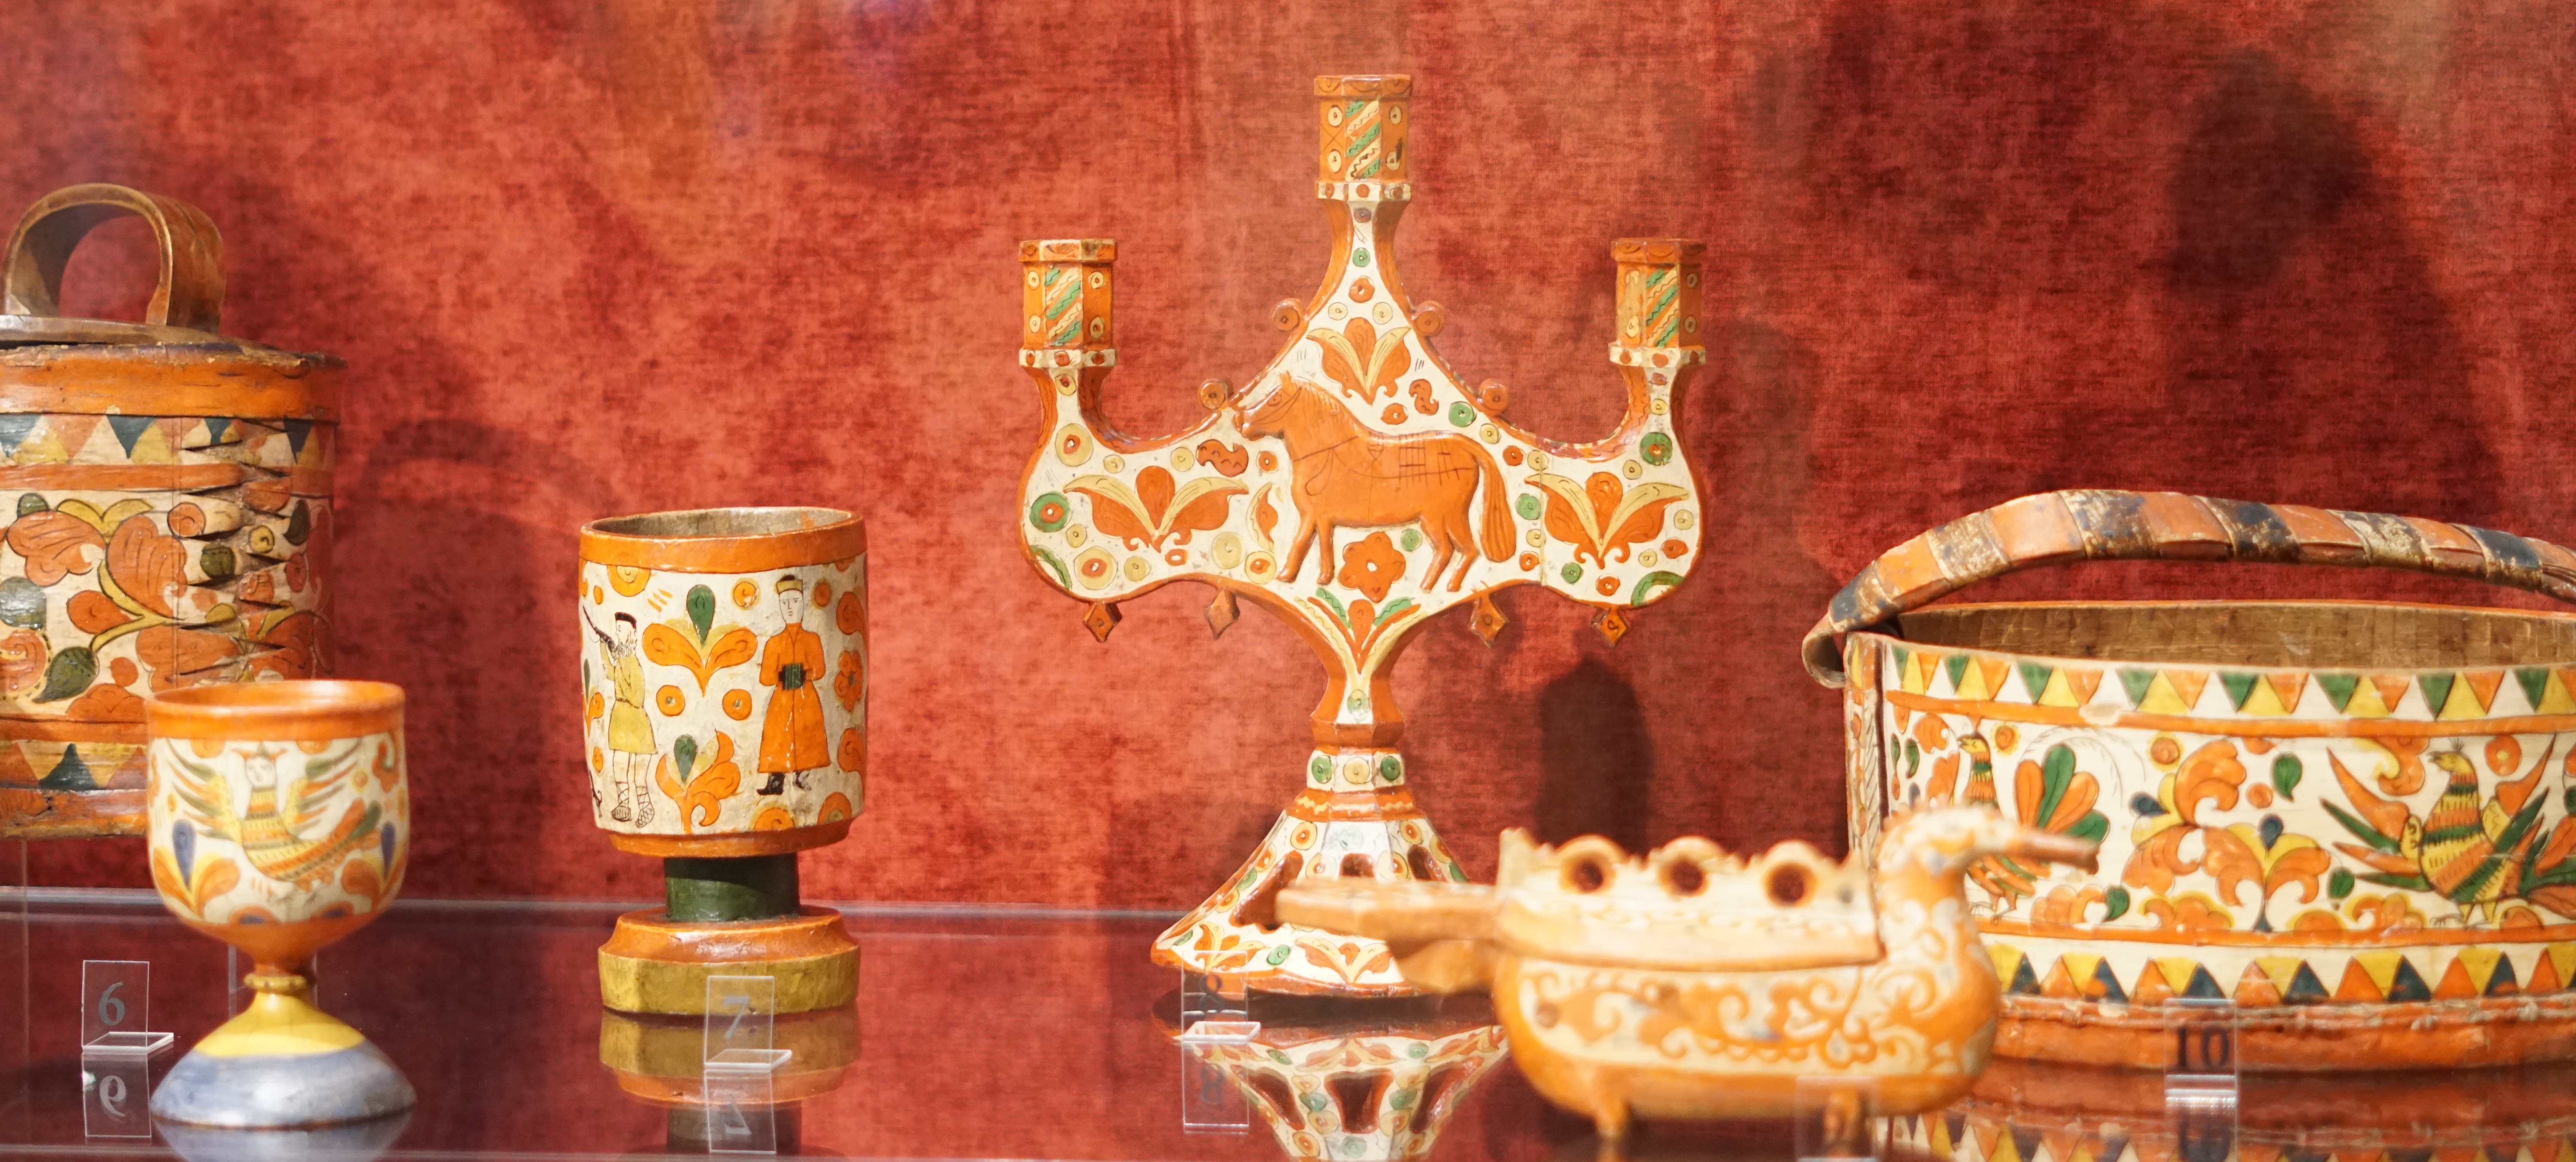 All Russian Museum Of Decorative Applied And Folk Art